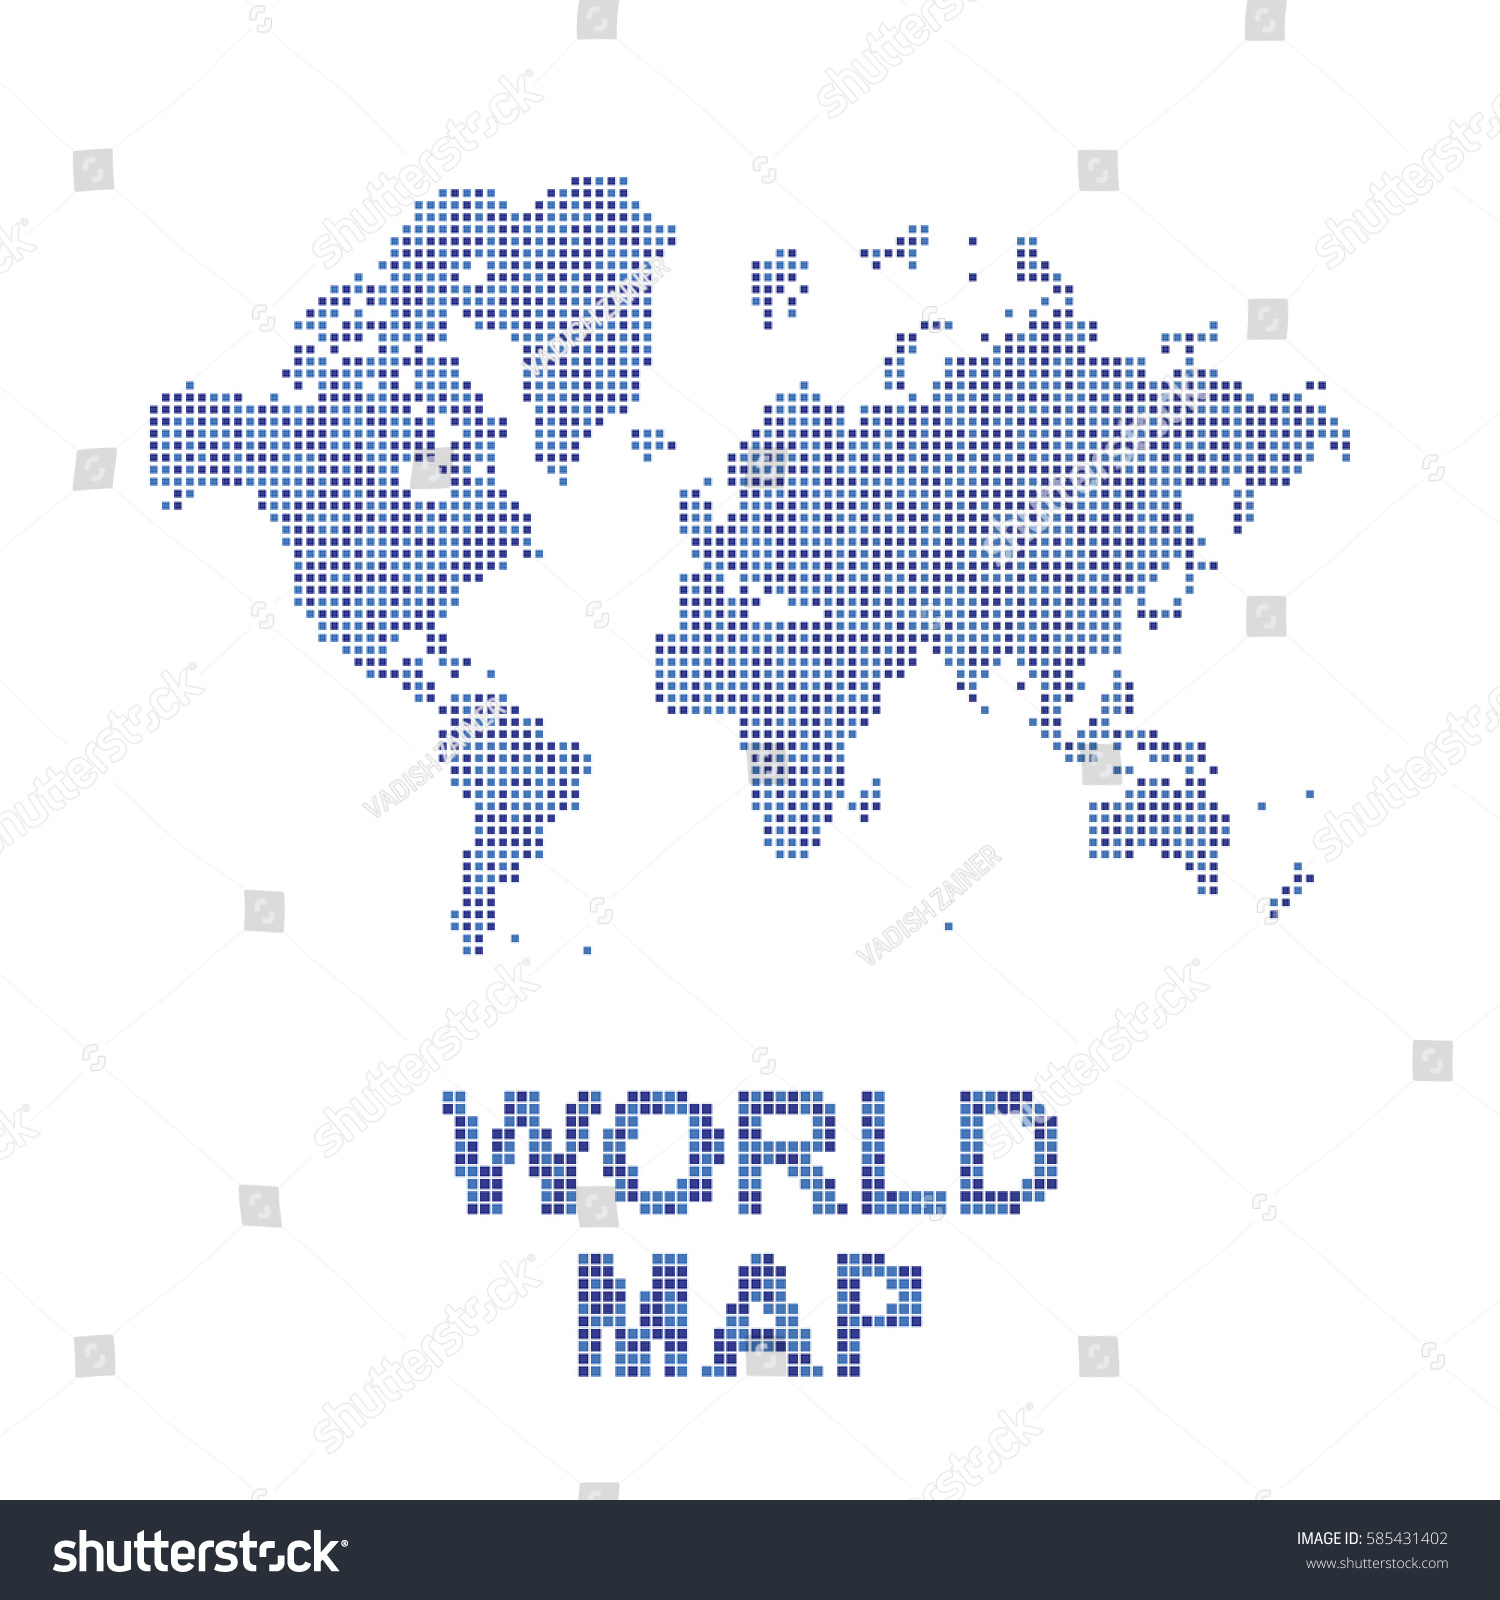 Abstract world map square dots flat stock vector hd royalty free abstract world map in a square dots flat vector illustration eps 10 gumiabroncs Choice Image